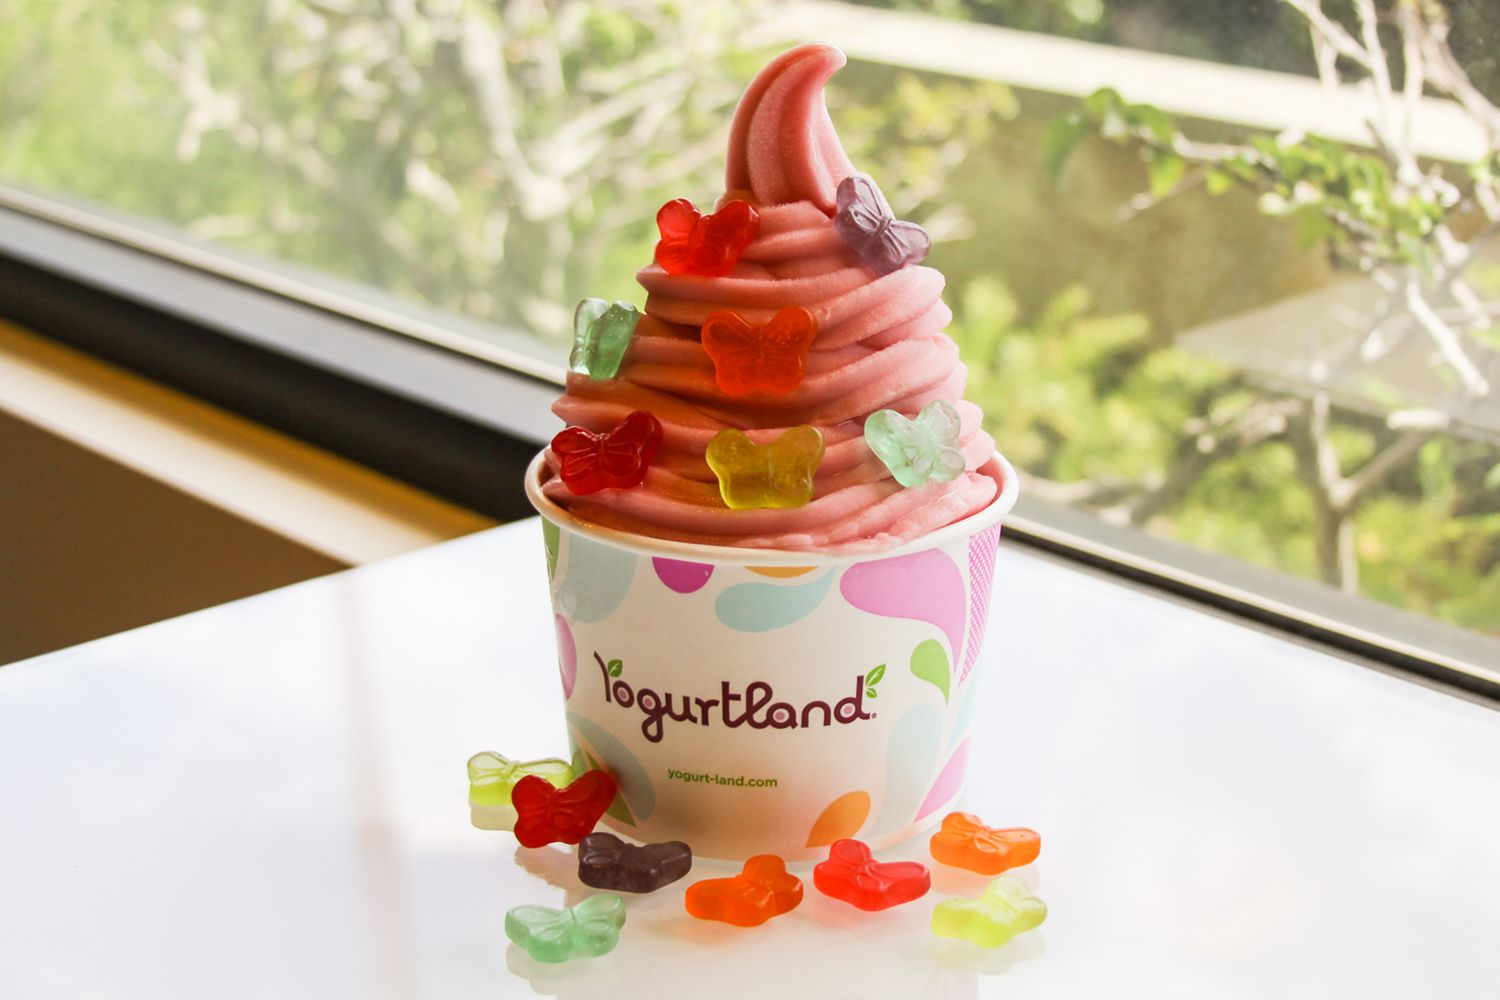 Yogurtland Shares Summer Joy With Newest Scratch-made Delicious Flavors